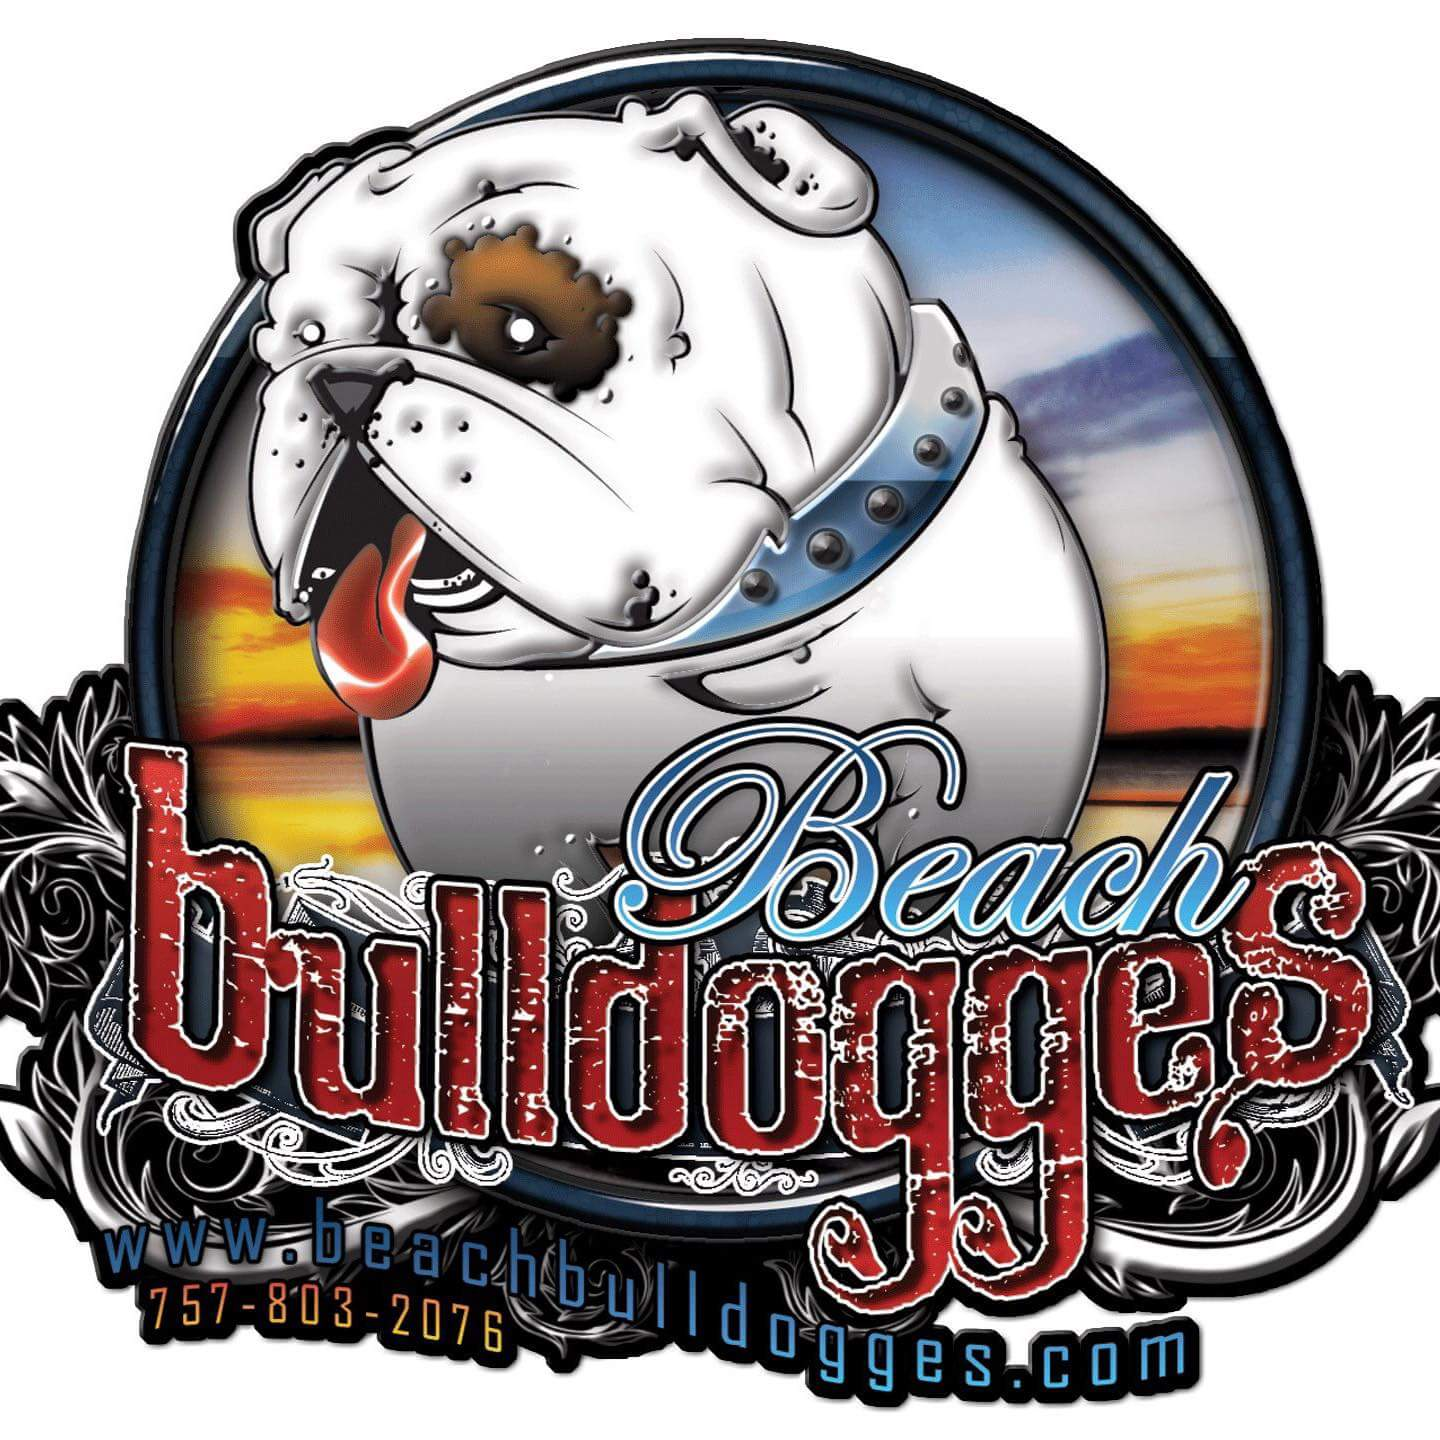 Beachbulldogges